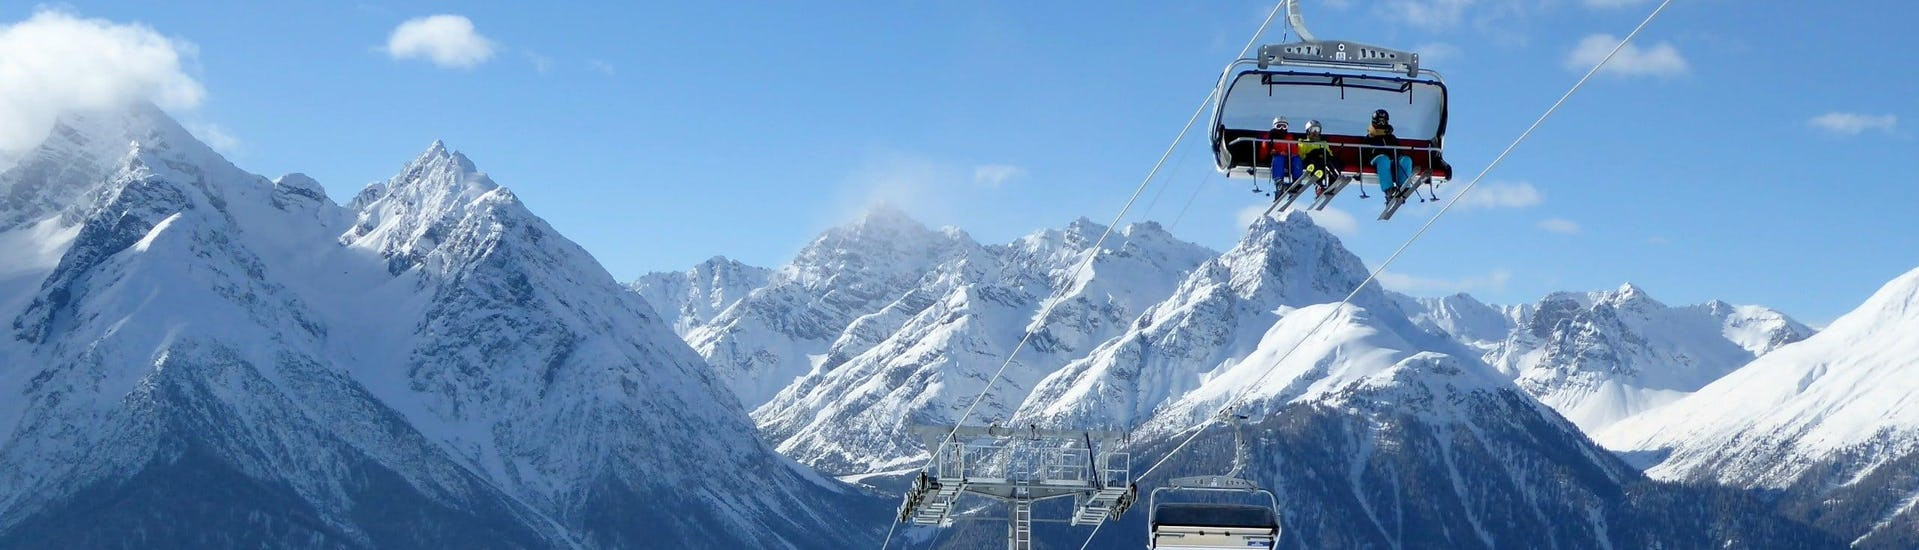 View over the sunny mountain landscape while learning to ski with the ski schools in Scuol.